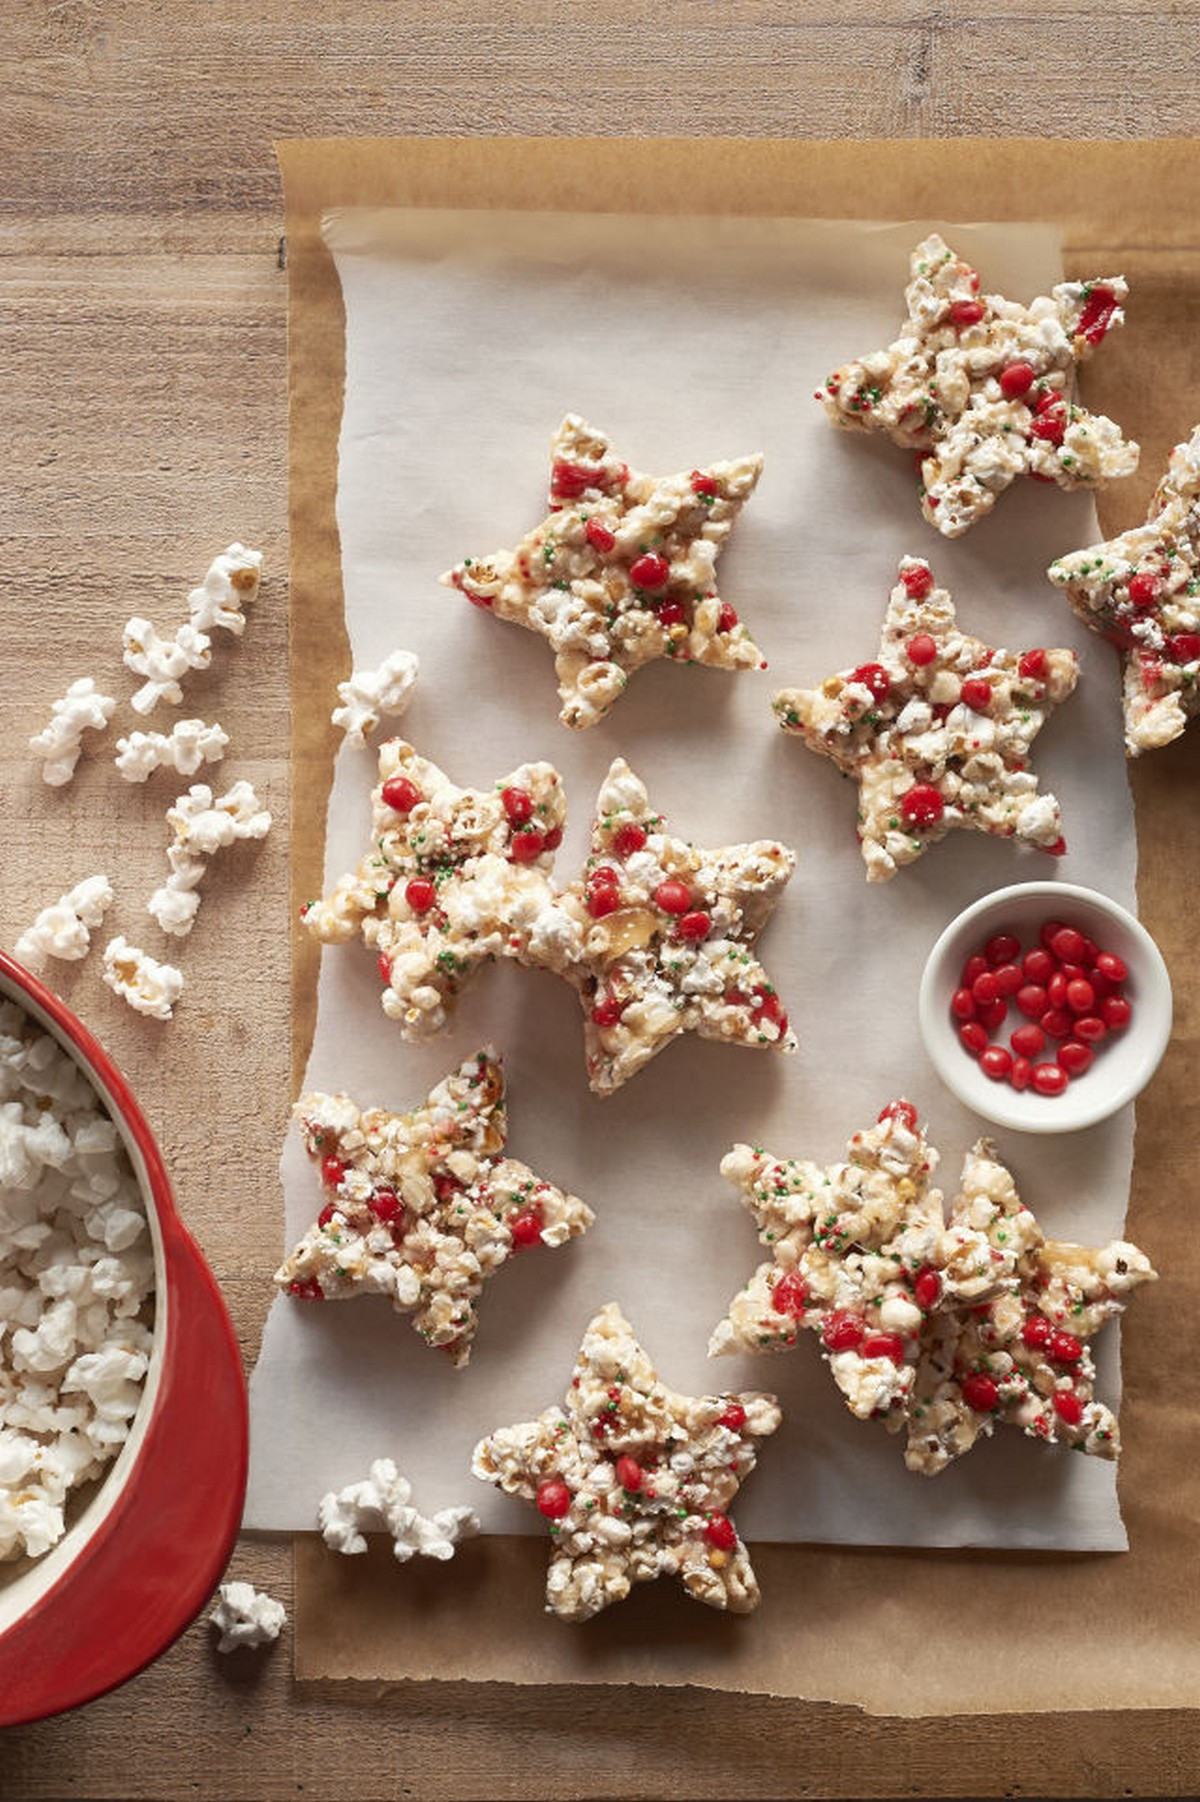 Start your holiday right by baking these delicious treats.